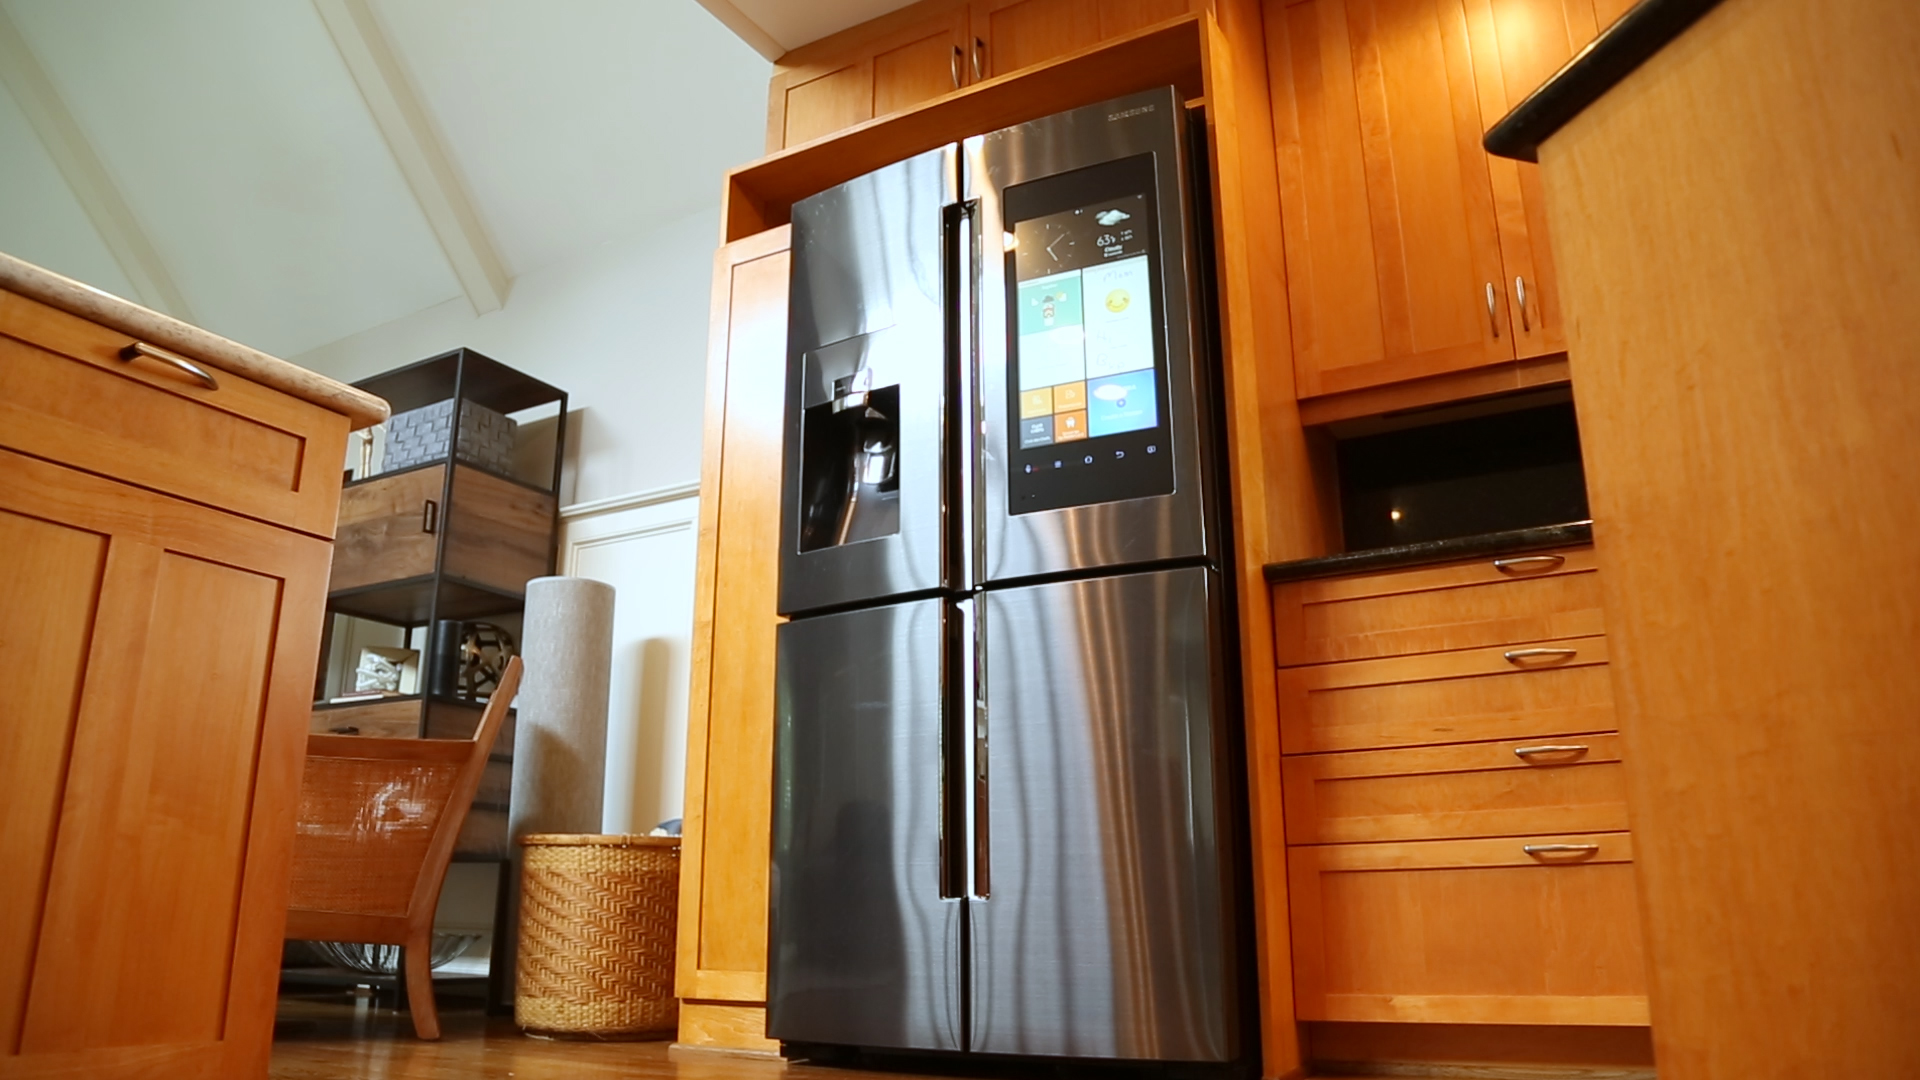 Video: Samsung's 6,000 smart fridge keeps watch over your leftovers